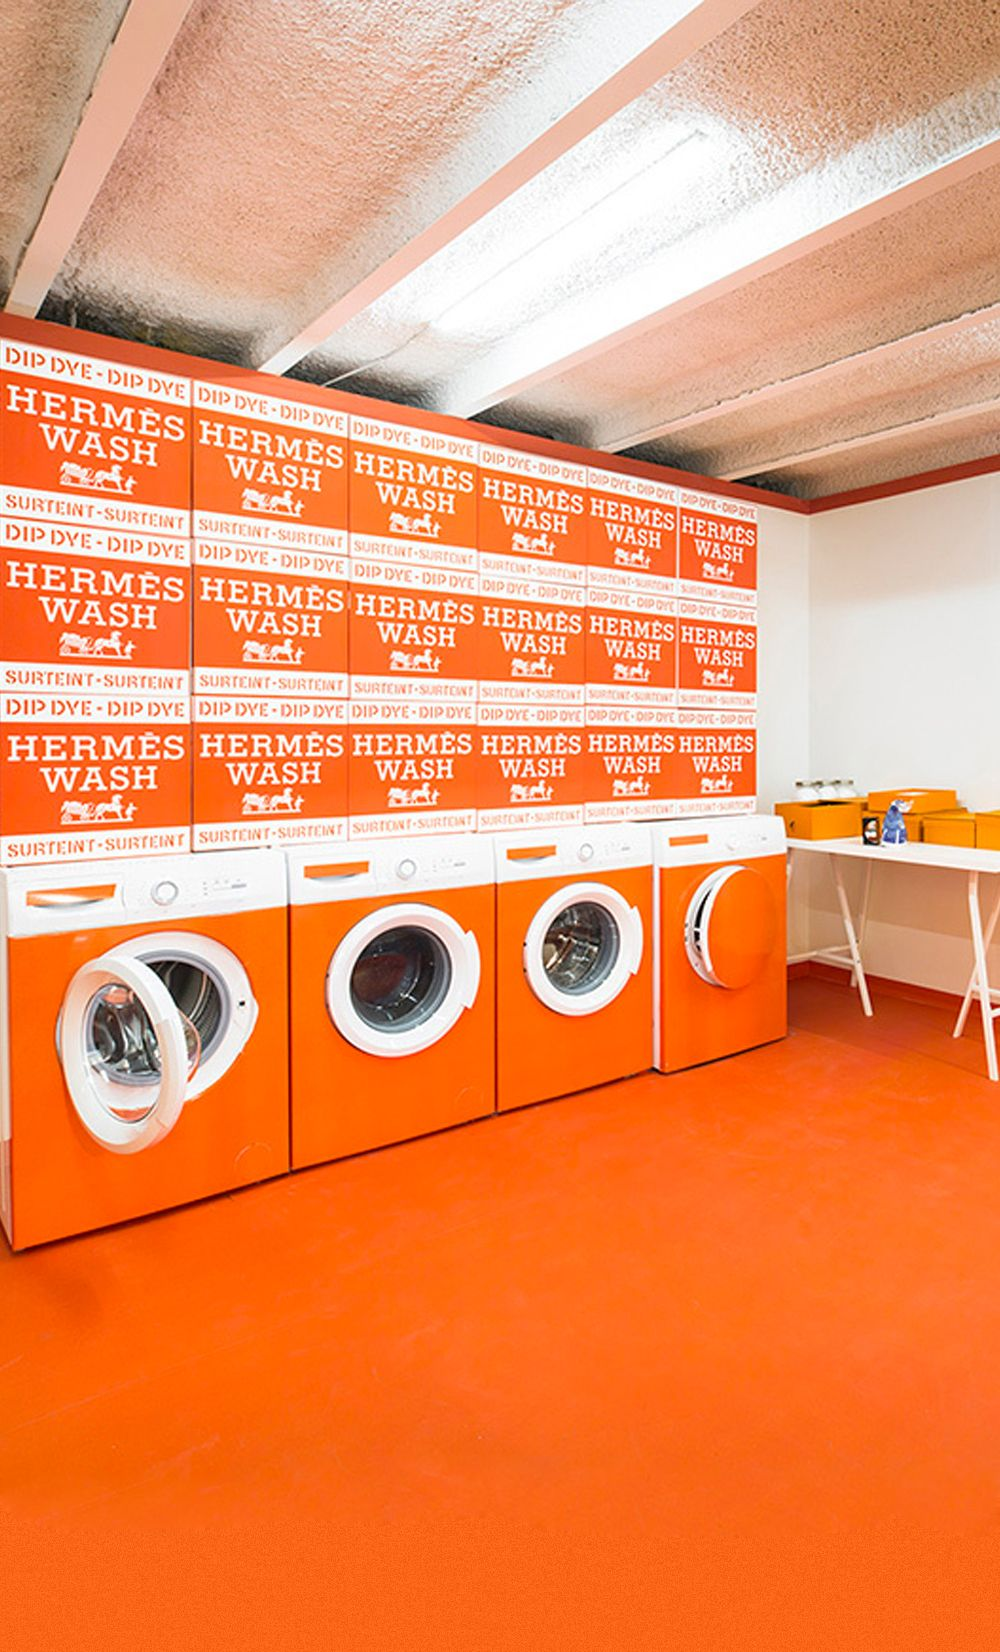 Hermesmatic A Dedicated Laundromat Pop Up By Hermes Bright